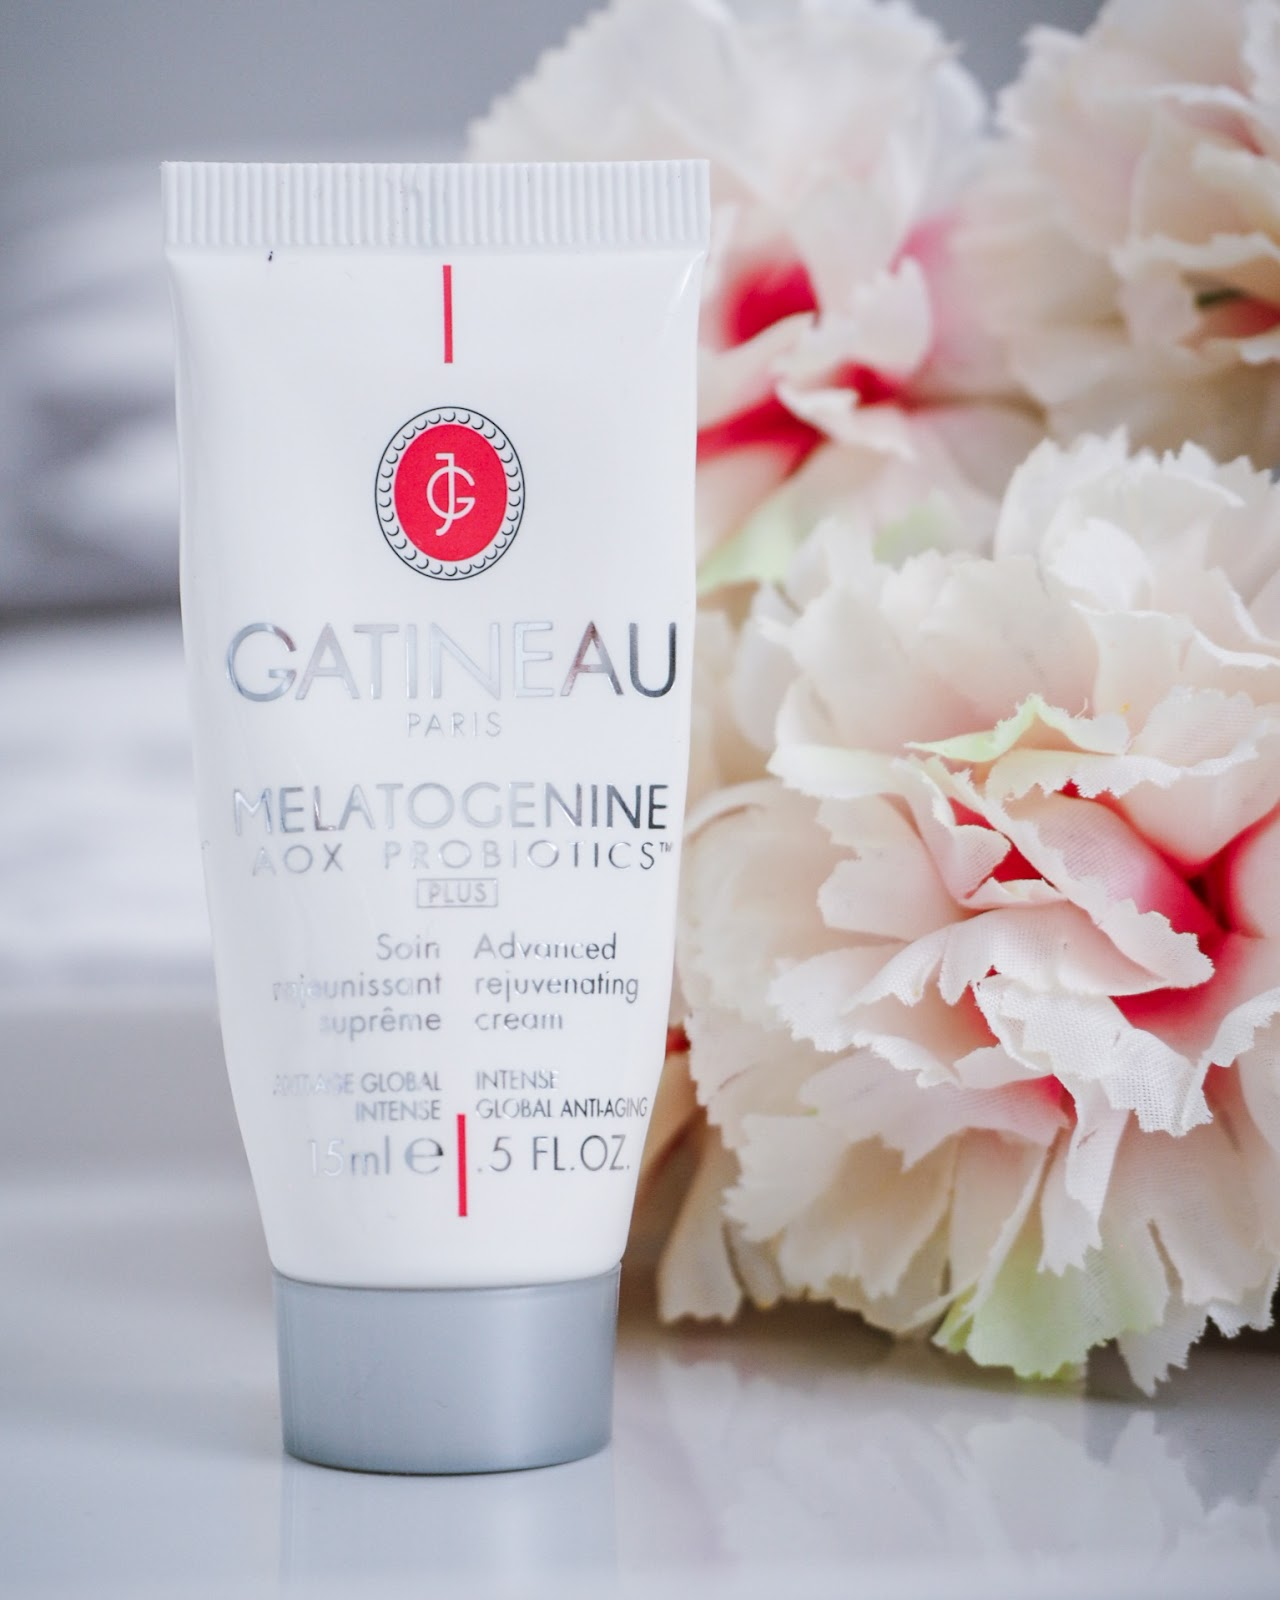 Gatineau Melatogenine AOX Probiotics Advanced Rejuvenating Cream